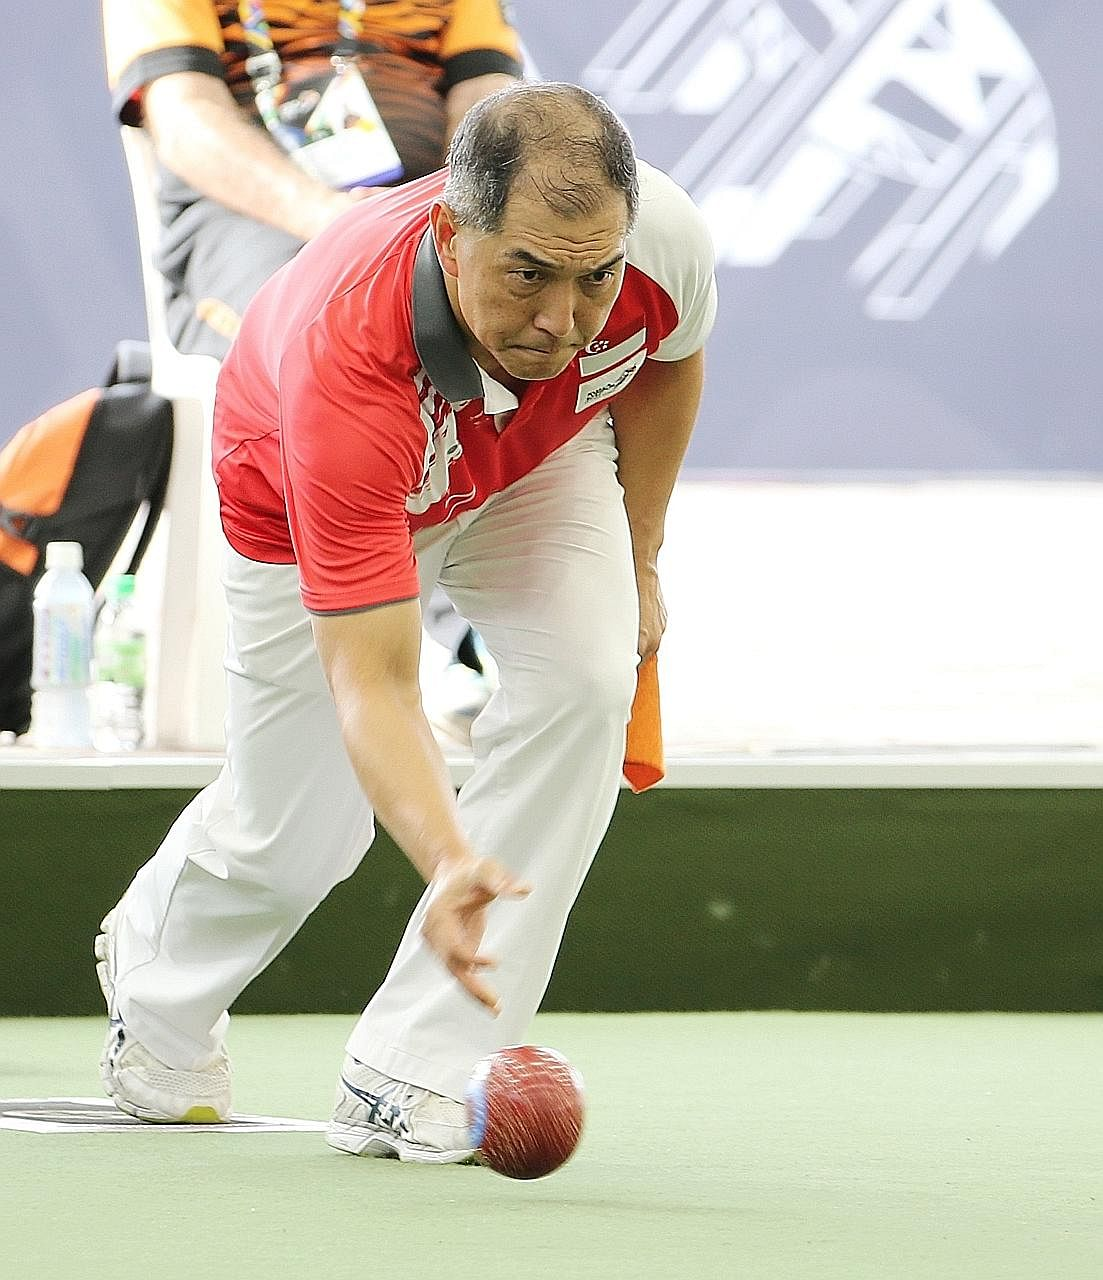 Lee Yuan Min competing in the lawn bowls men's singles final against Malaysia's Muhammad Soufi Rusli. He lost 6-21 but his silver makes him Team Singapore's oldest medallist at the Kuala Lumpur Games.